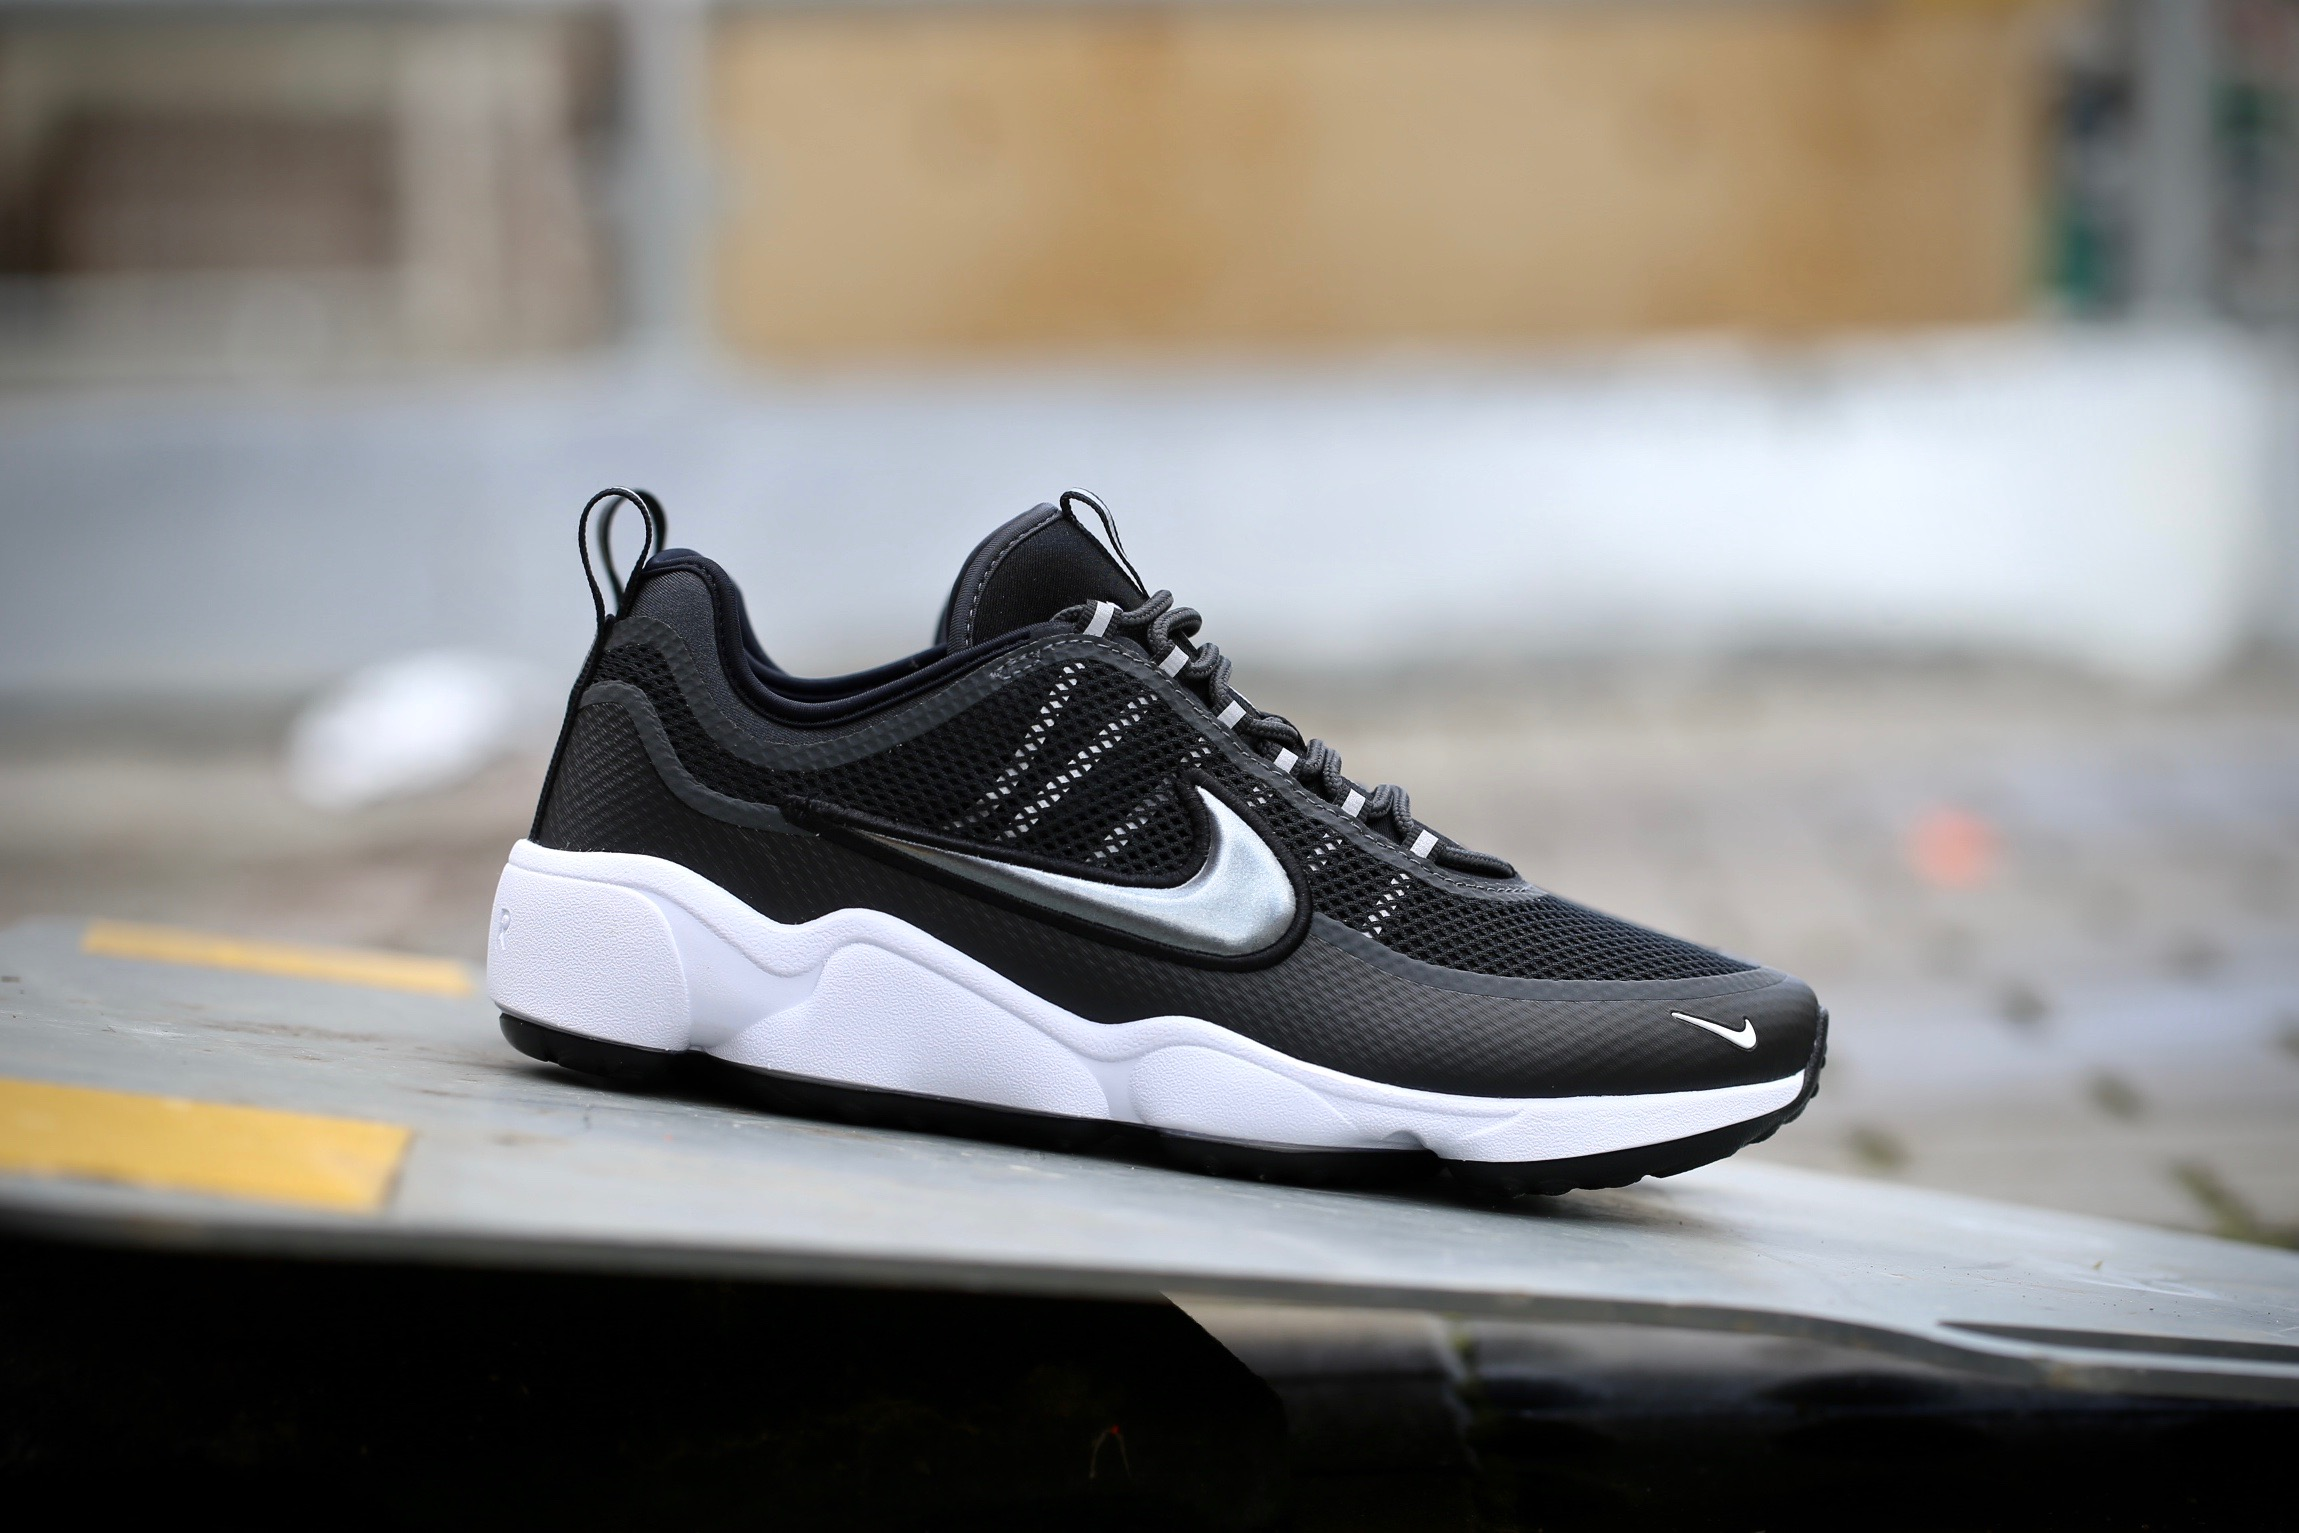 aacd3452e57bf8 Nike Air Zoom Spiridon – Black   Metallic Hematite   Anthracite ...